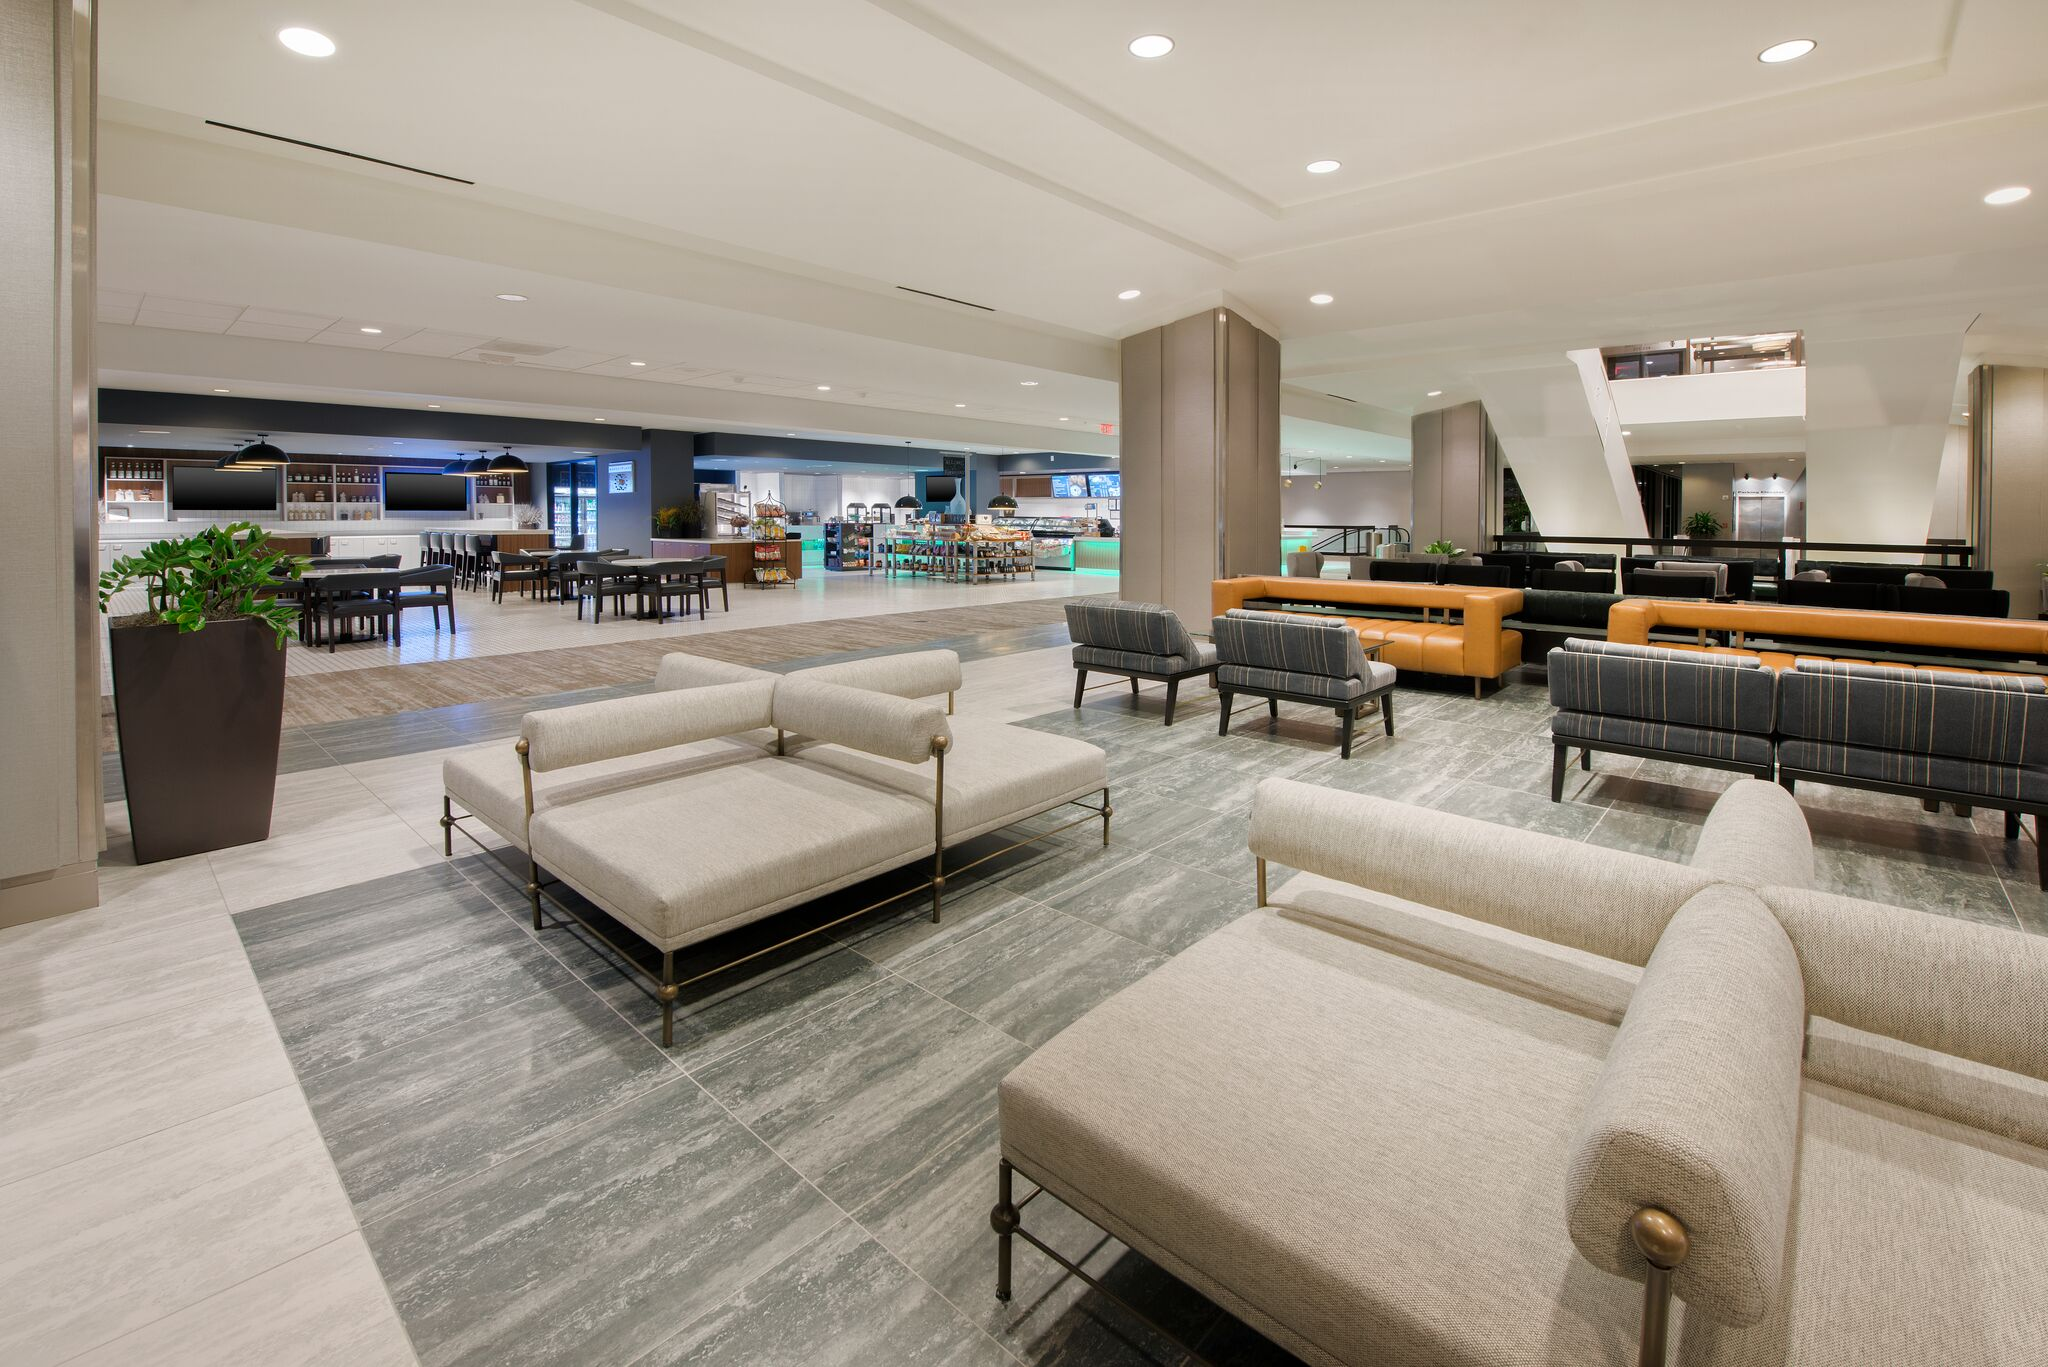 Hospitality interior design firms atlanta the